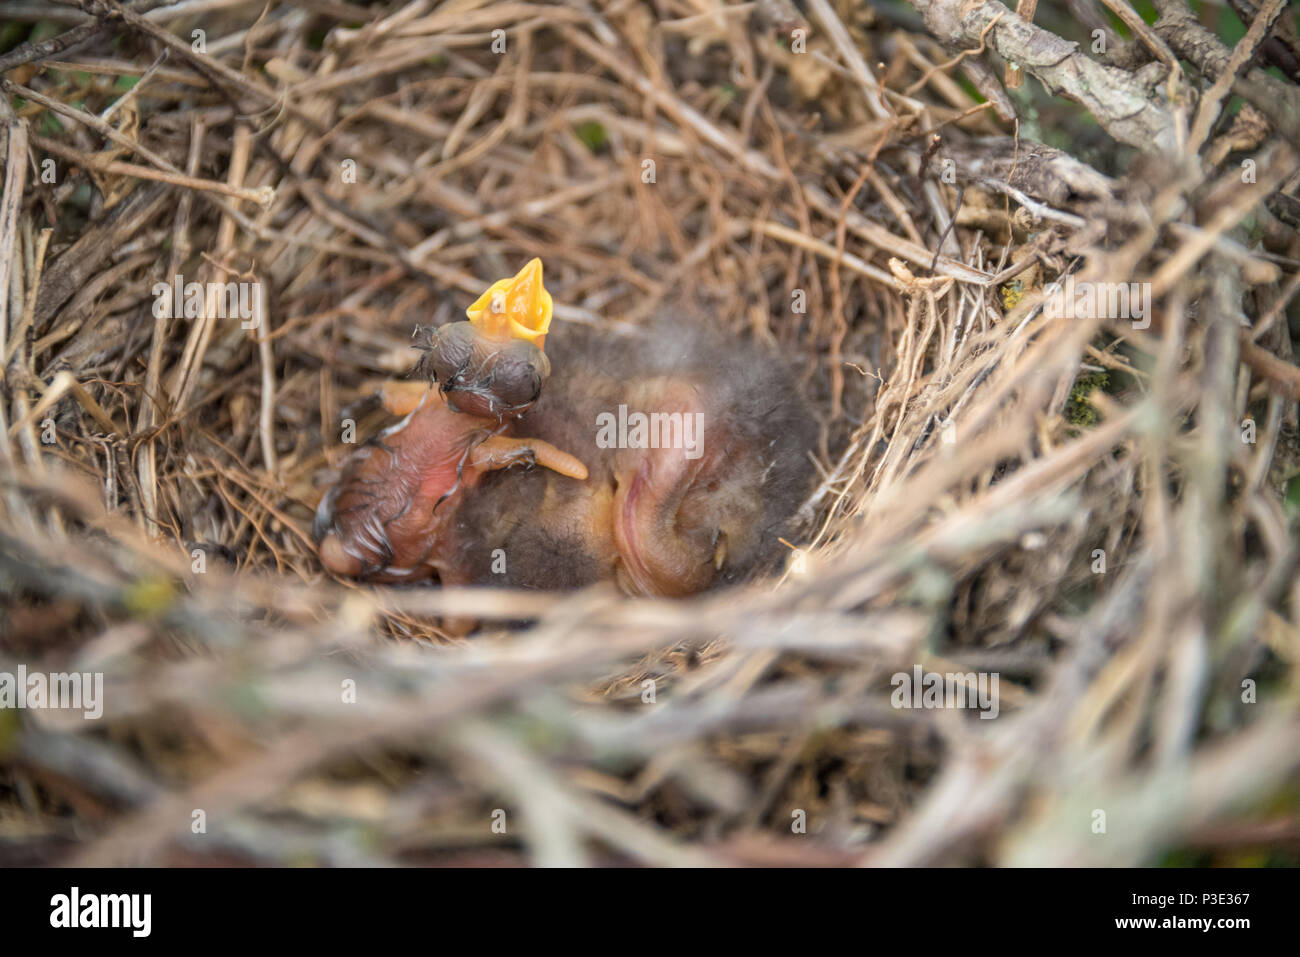 Newborn bird with mouth open in nest. - Stock Image